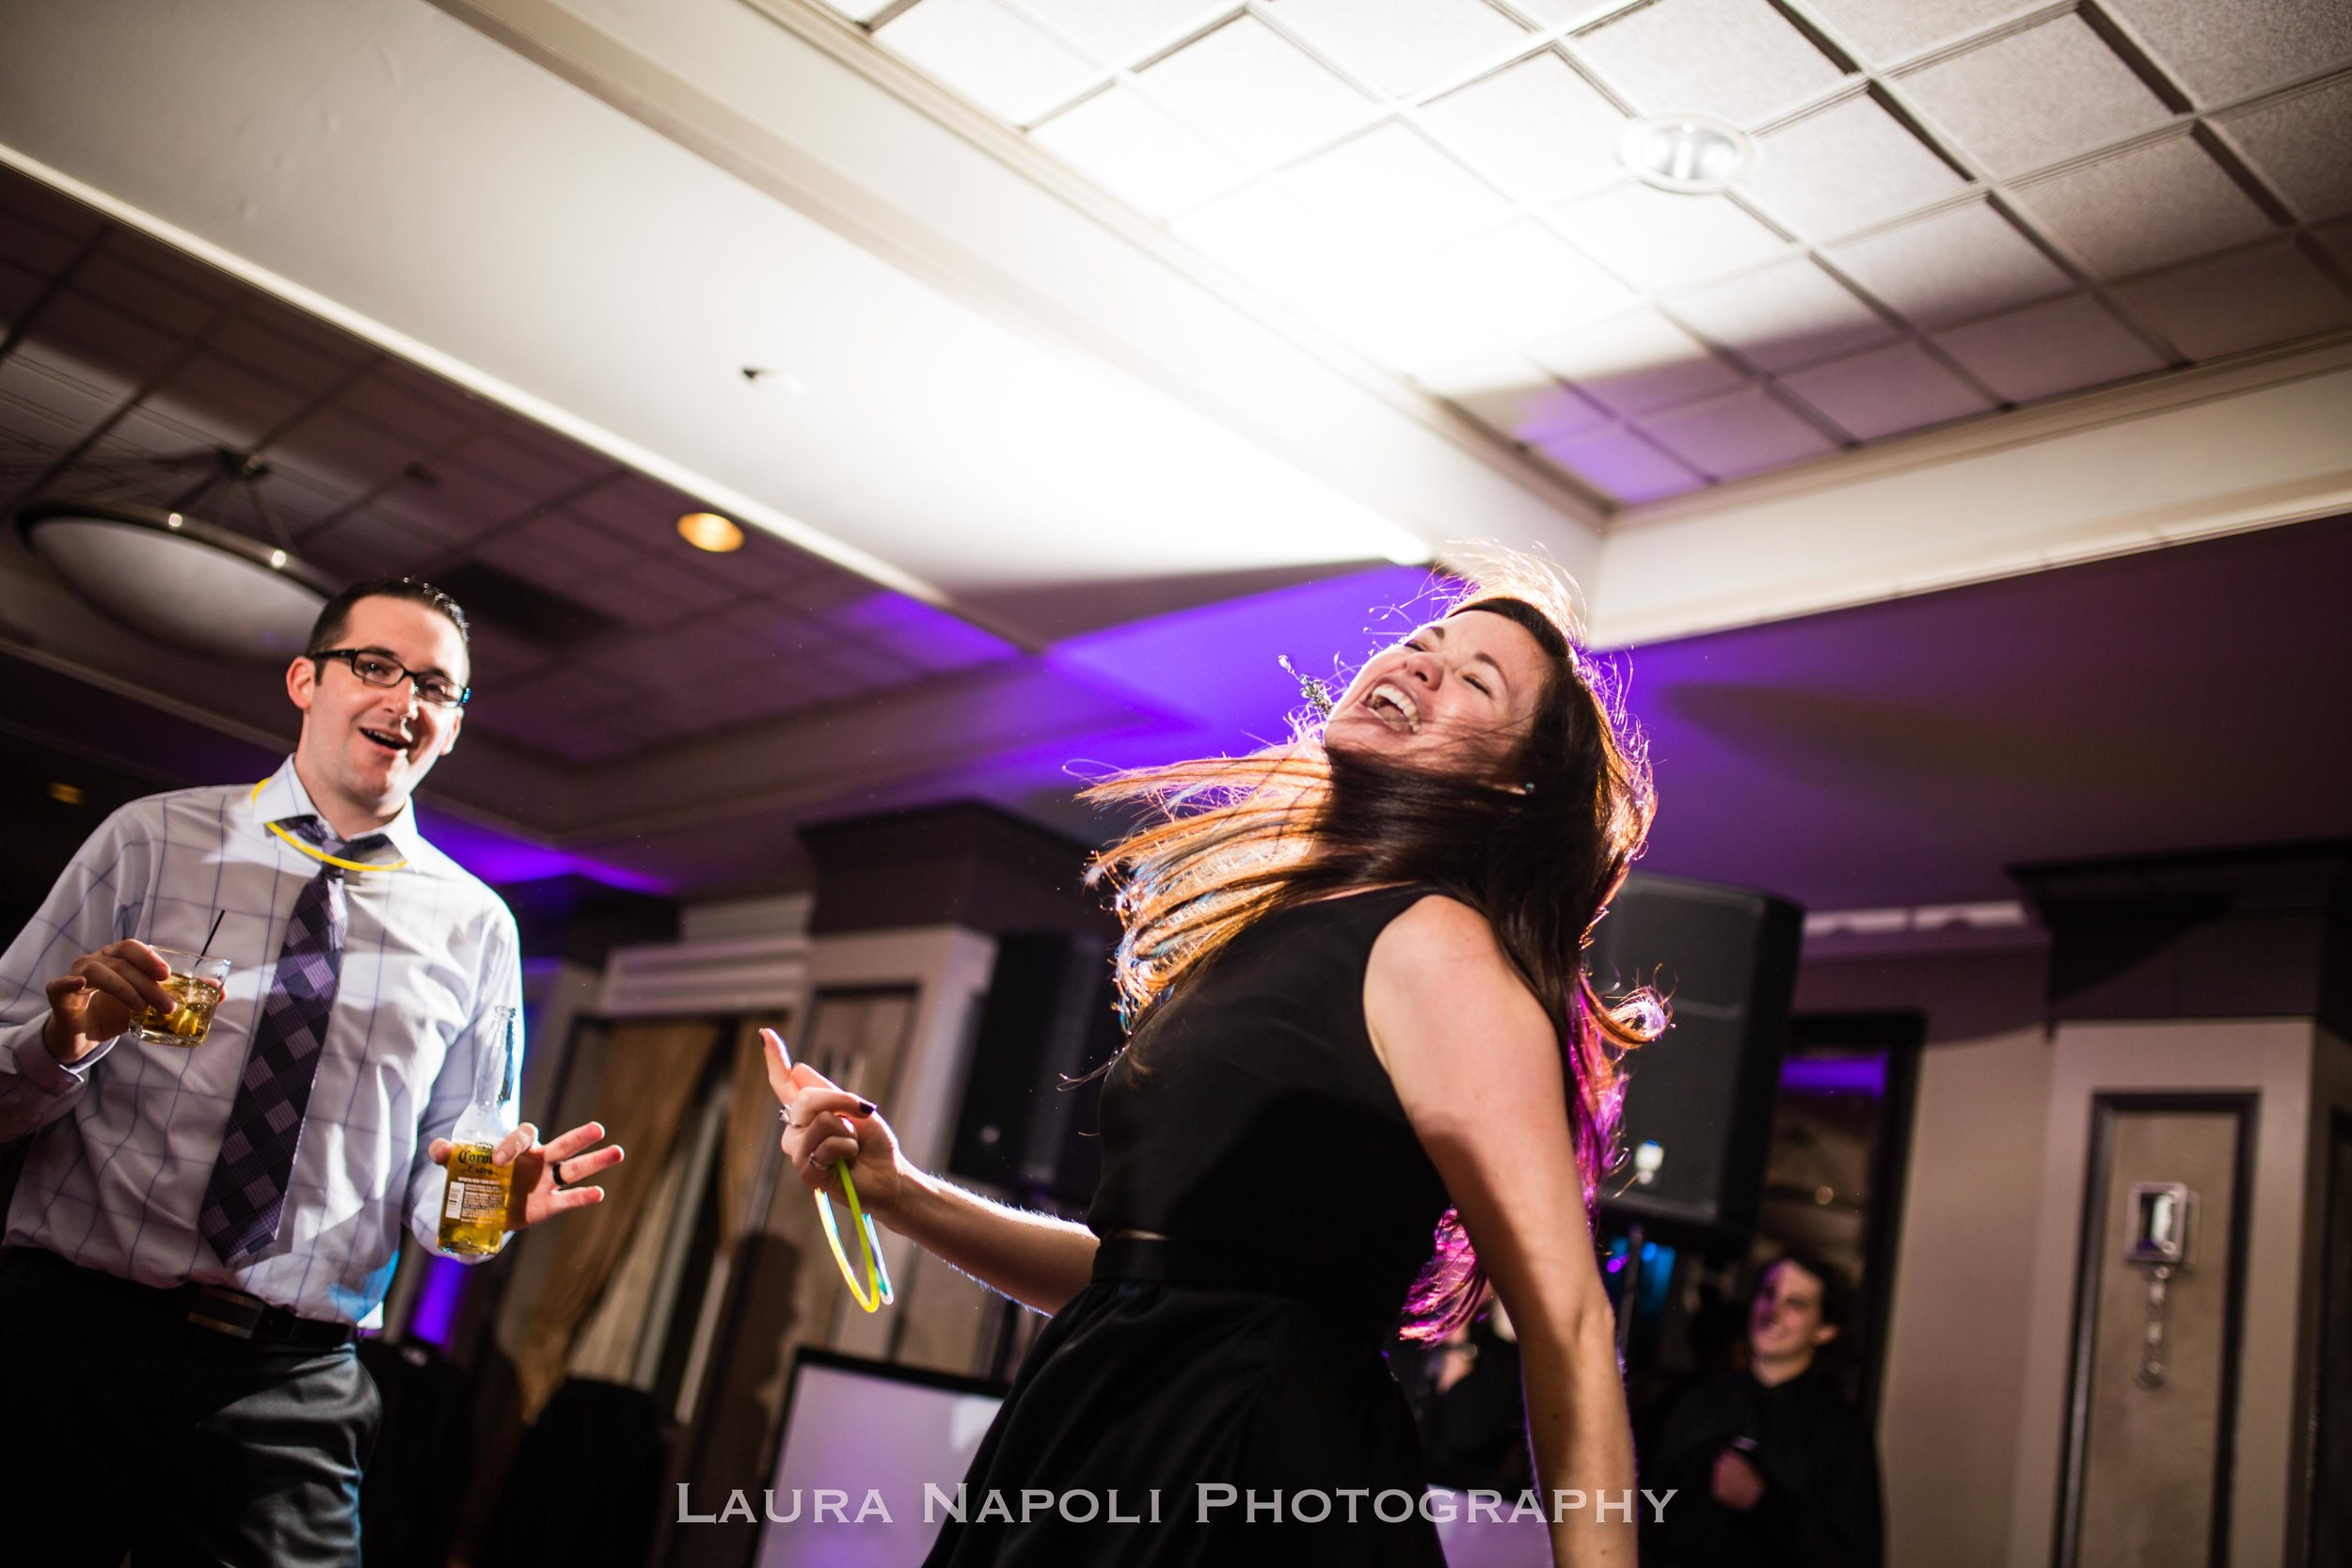 ScotlandRunWilliamstownNJWeddingvenue-17.jpg